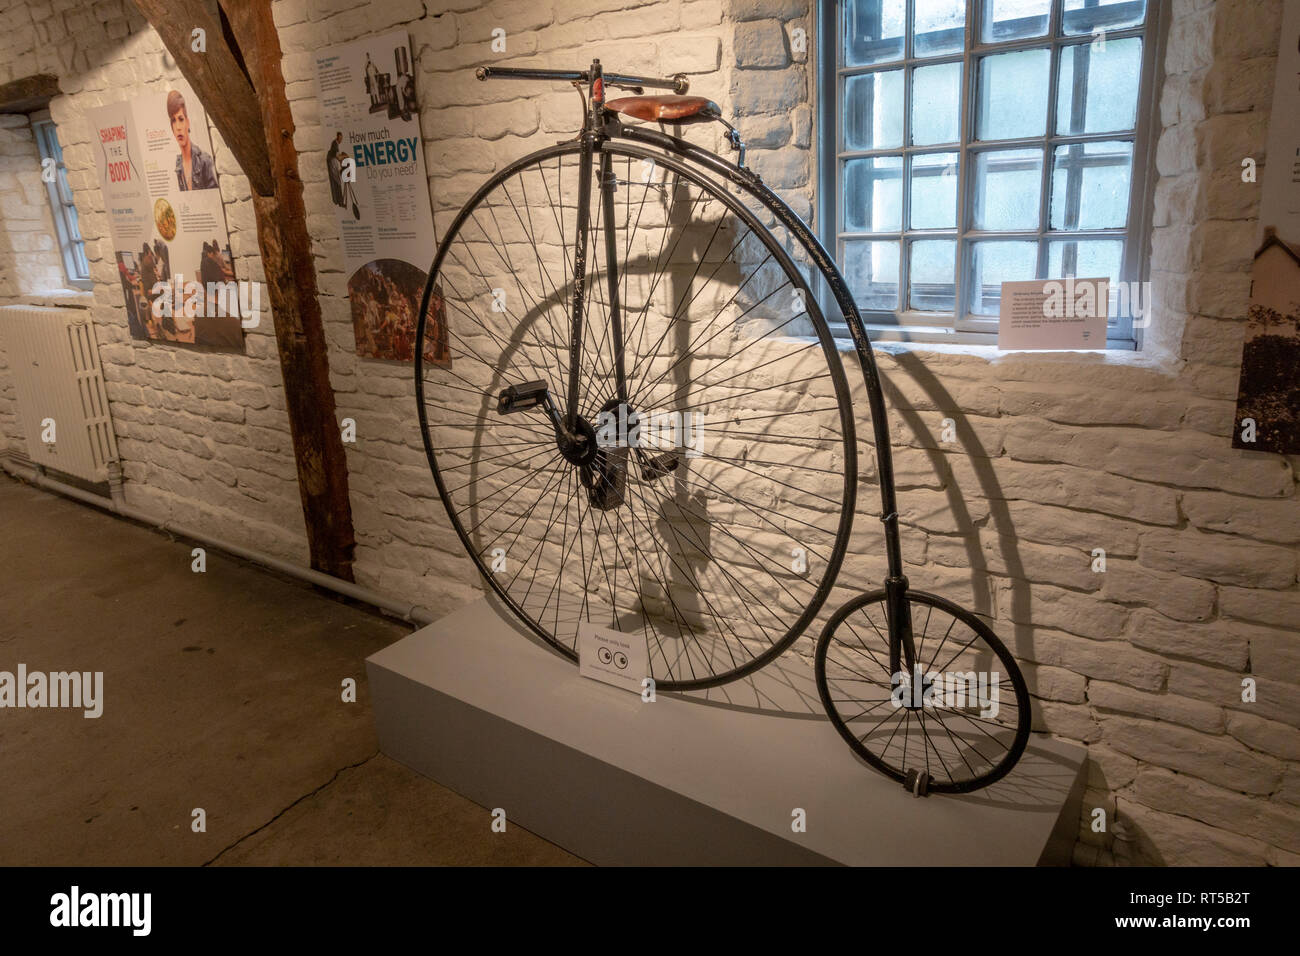 An Ordinary bicycle from 1870-80 (or penny farthing), York Castle Museum, York, Yorkshire, UK. - Stock Image